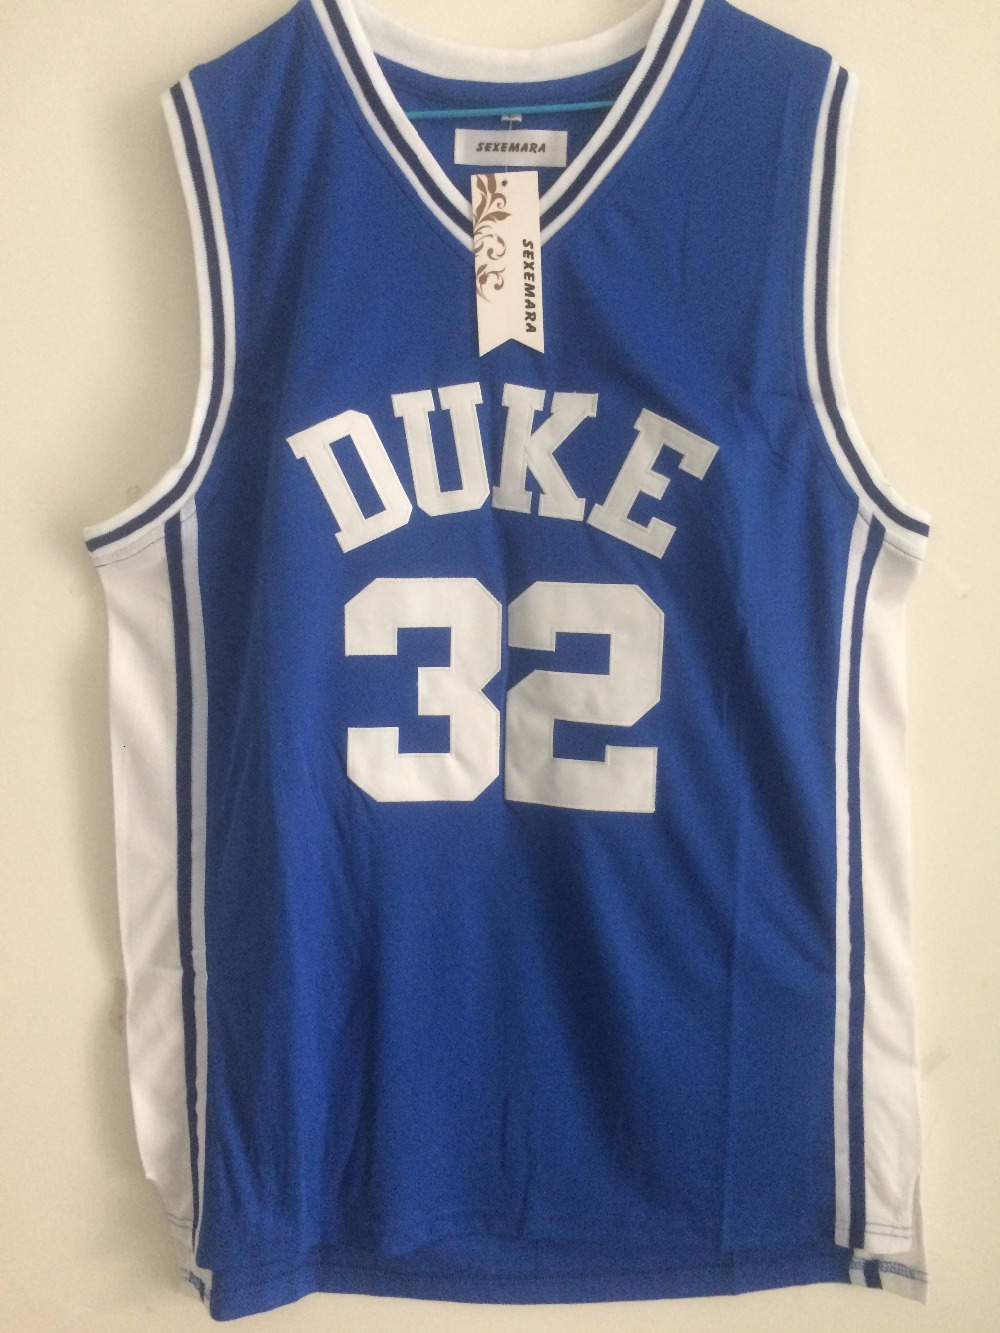 1dfa4708c591 Buy duke laettner and get free shipping on AliExpress.com